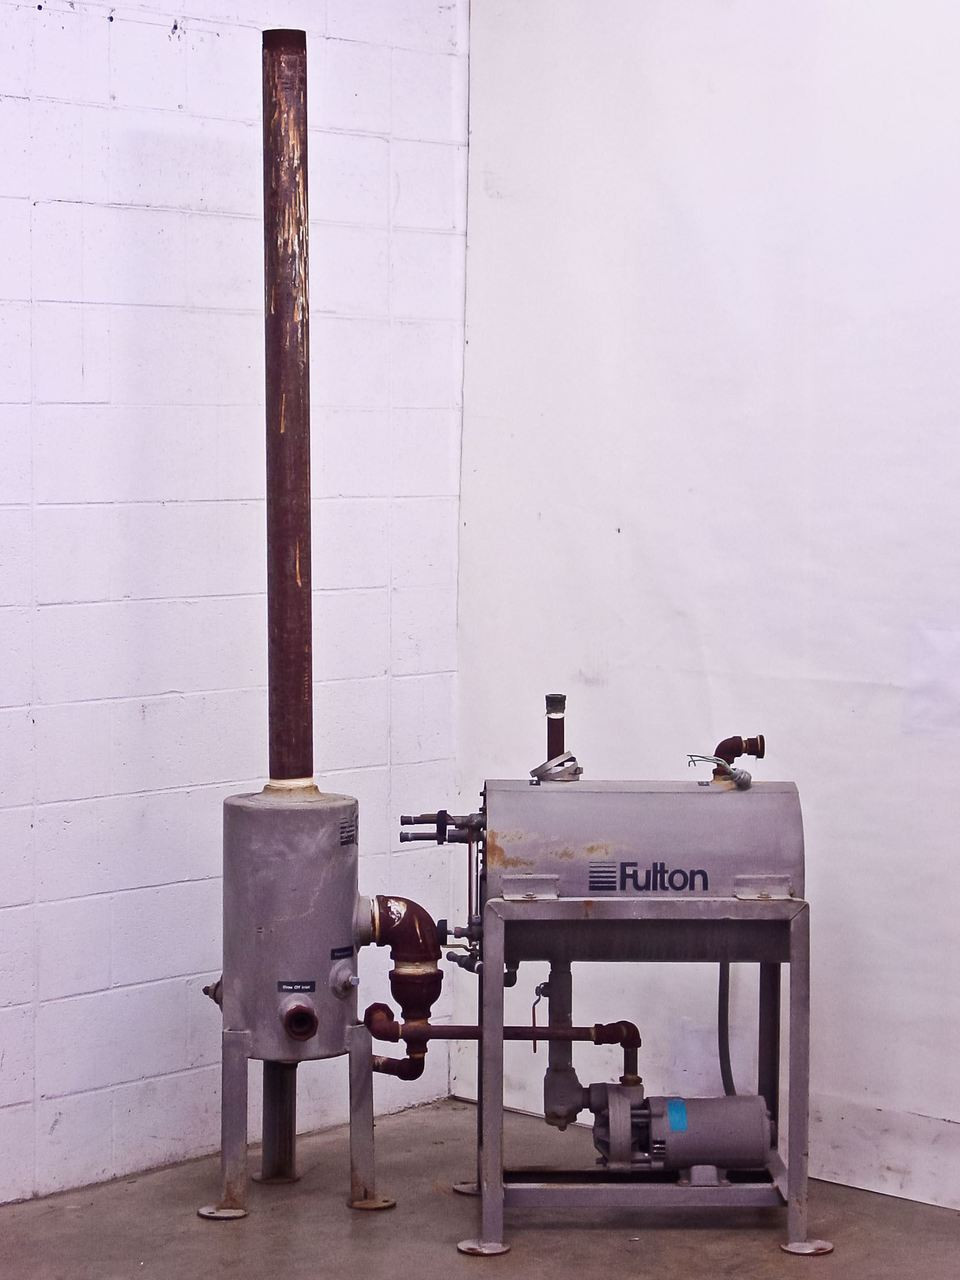 Steam Boiler Condensate Return System ~ Fulton ht horizontal condensate boiler return system